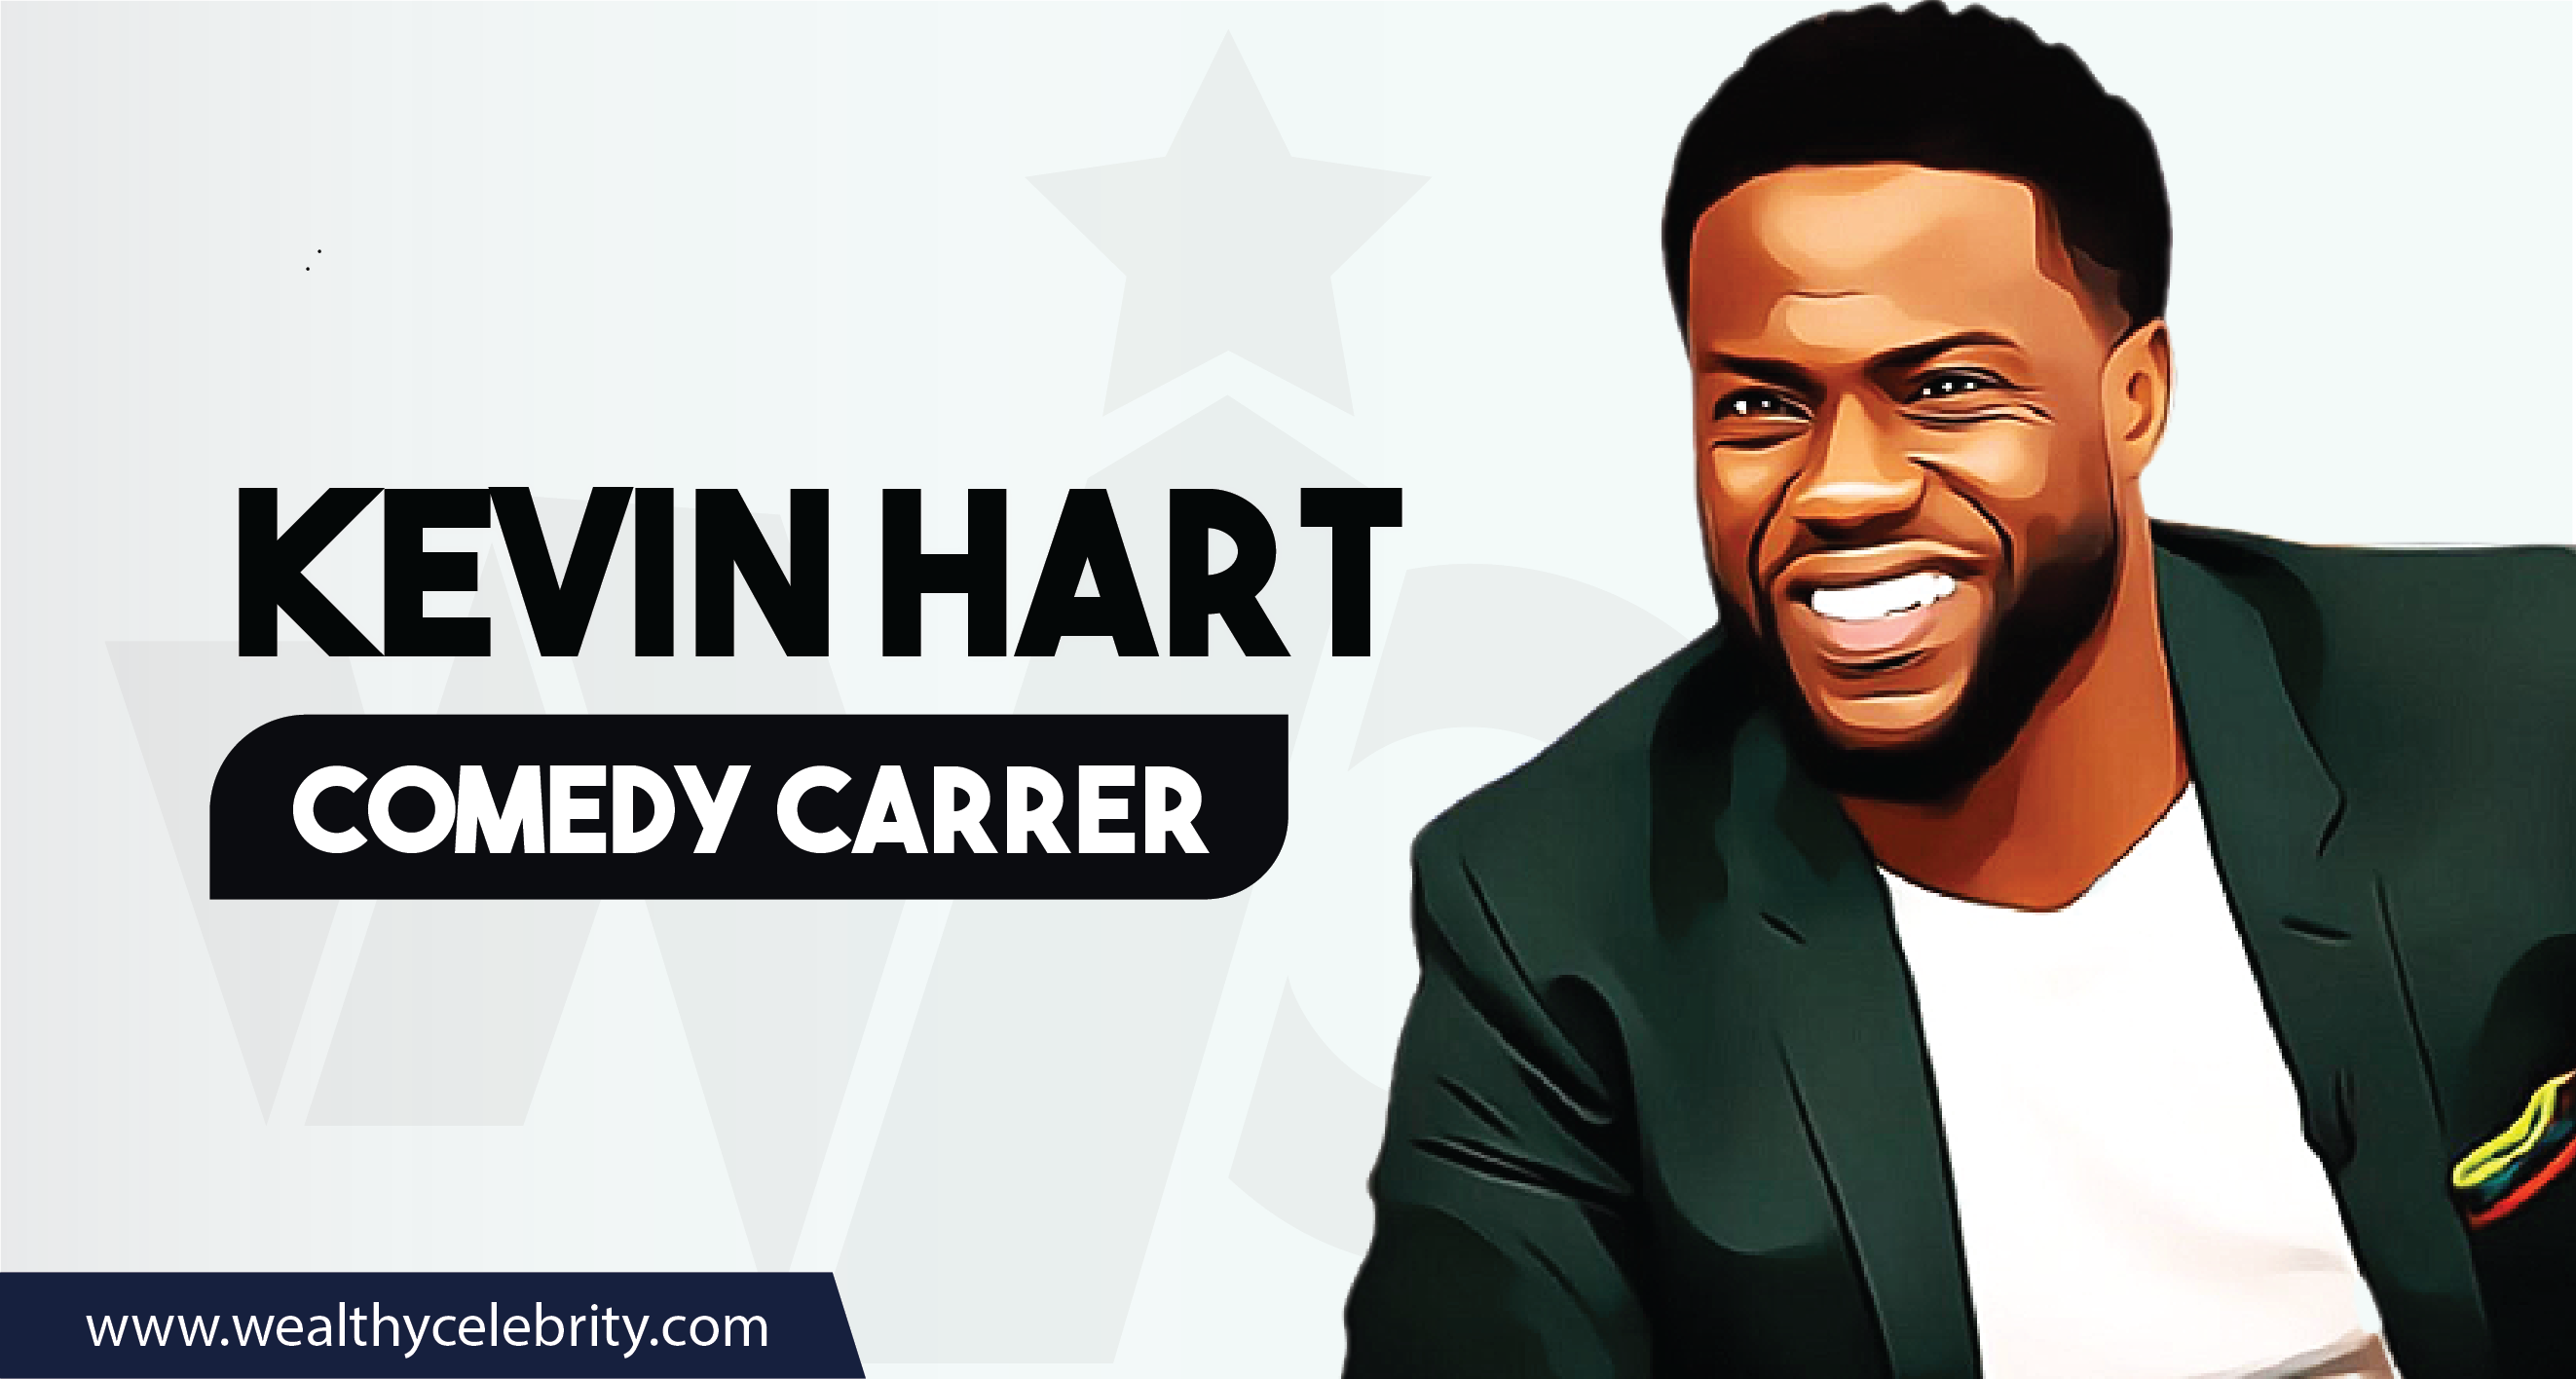 Kevin Hart Comedy Career